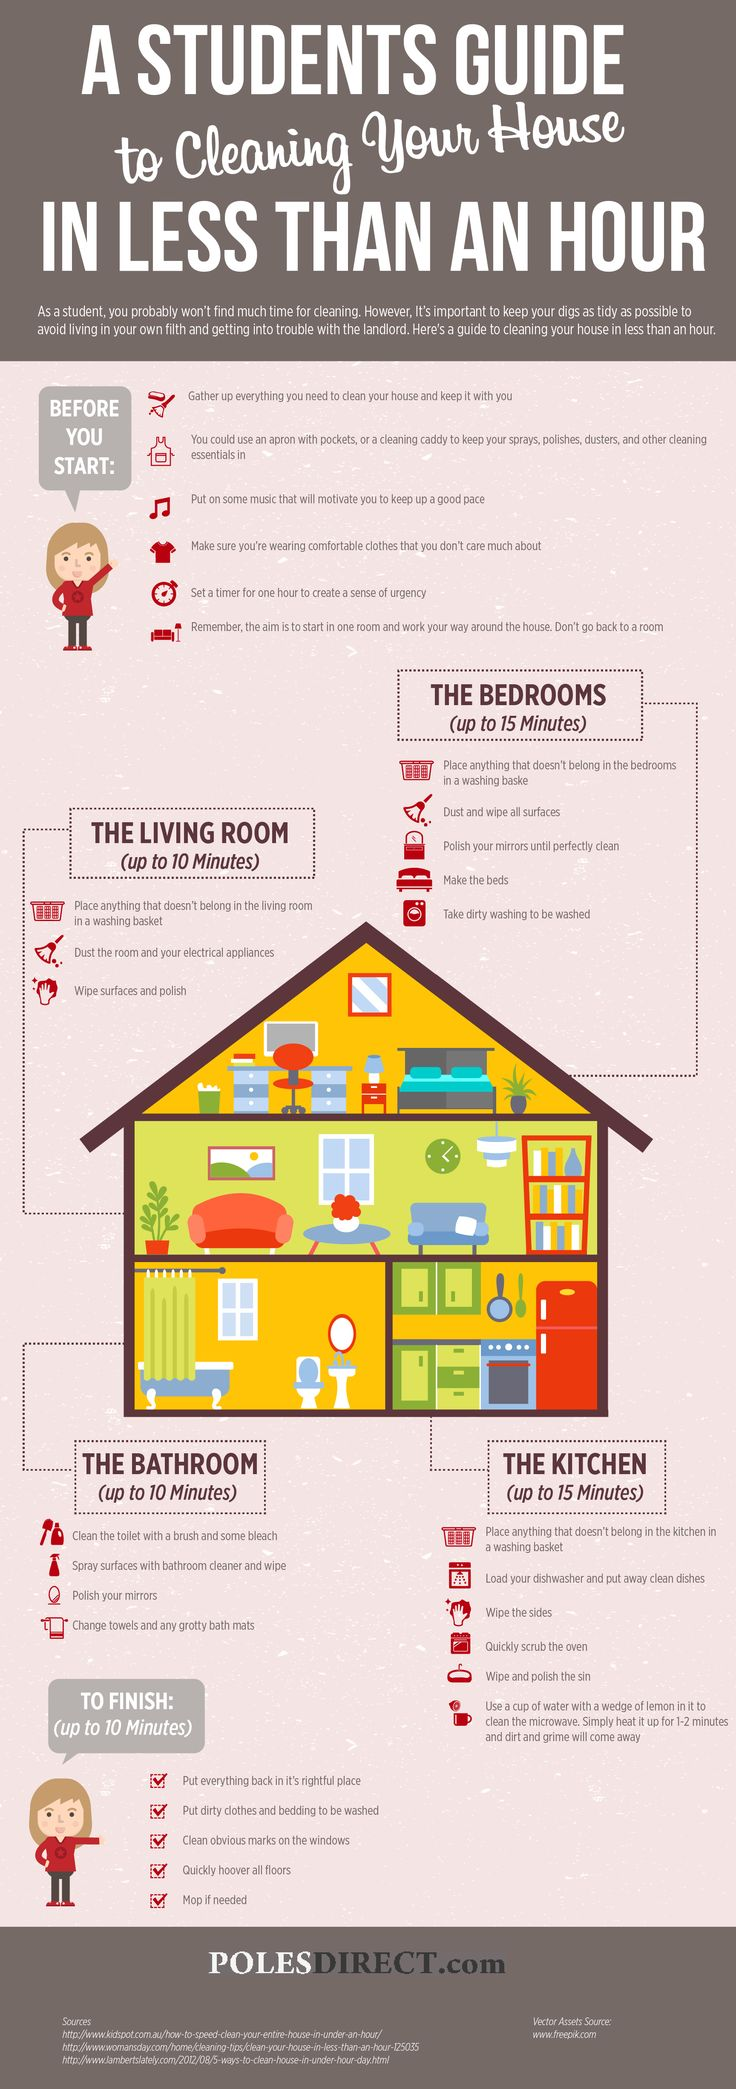 A Student Guide To Cleaning Your House In Less Than An Hour Infographic